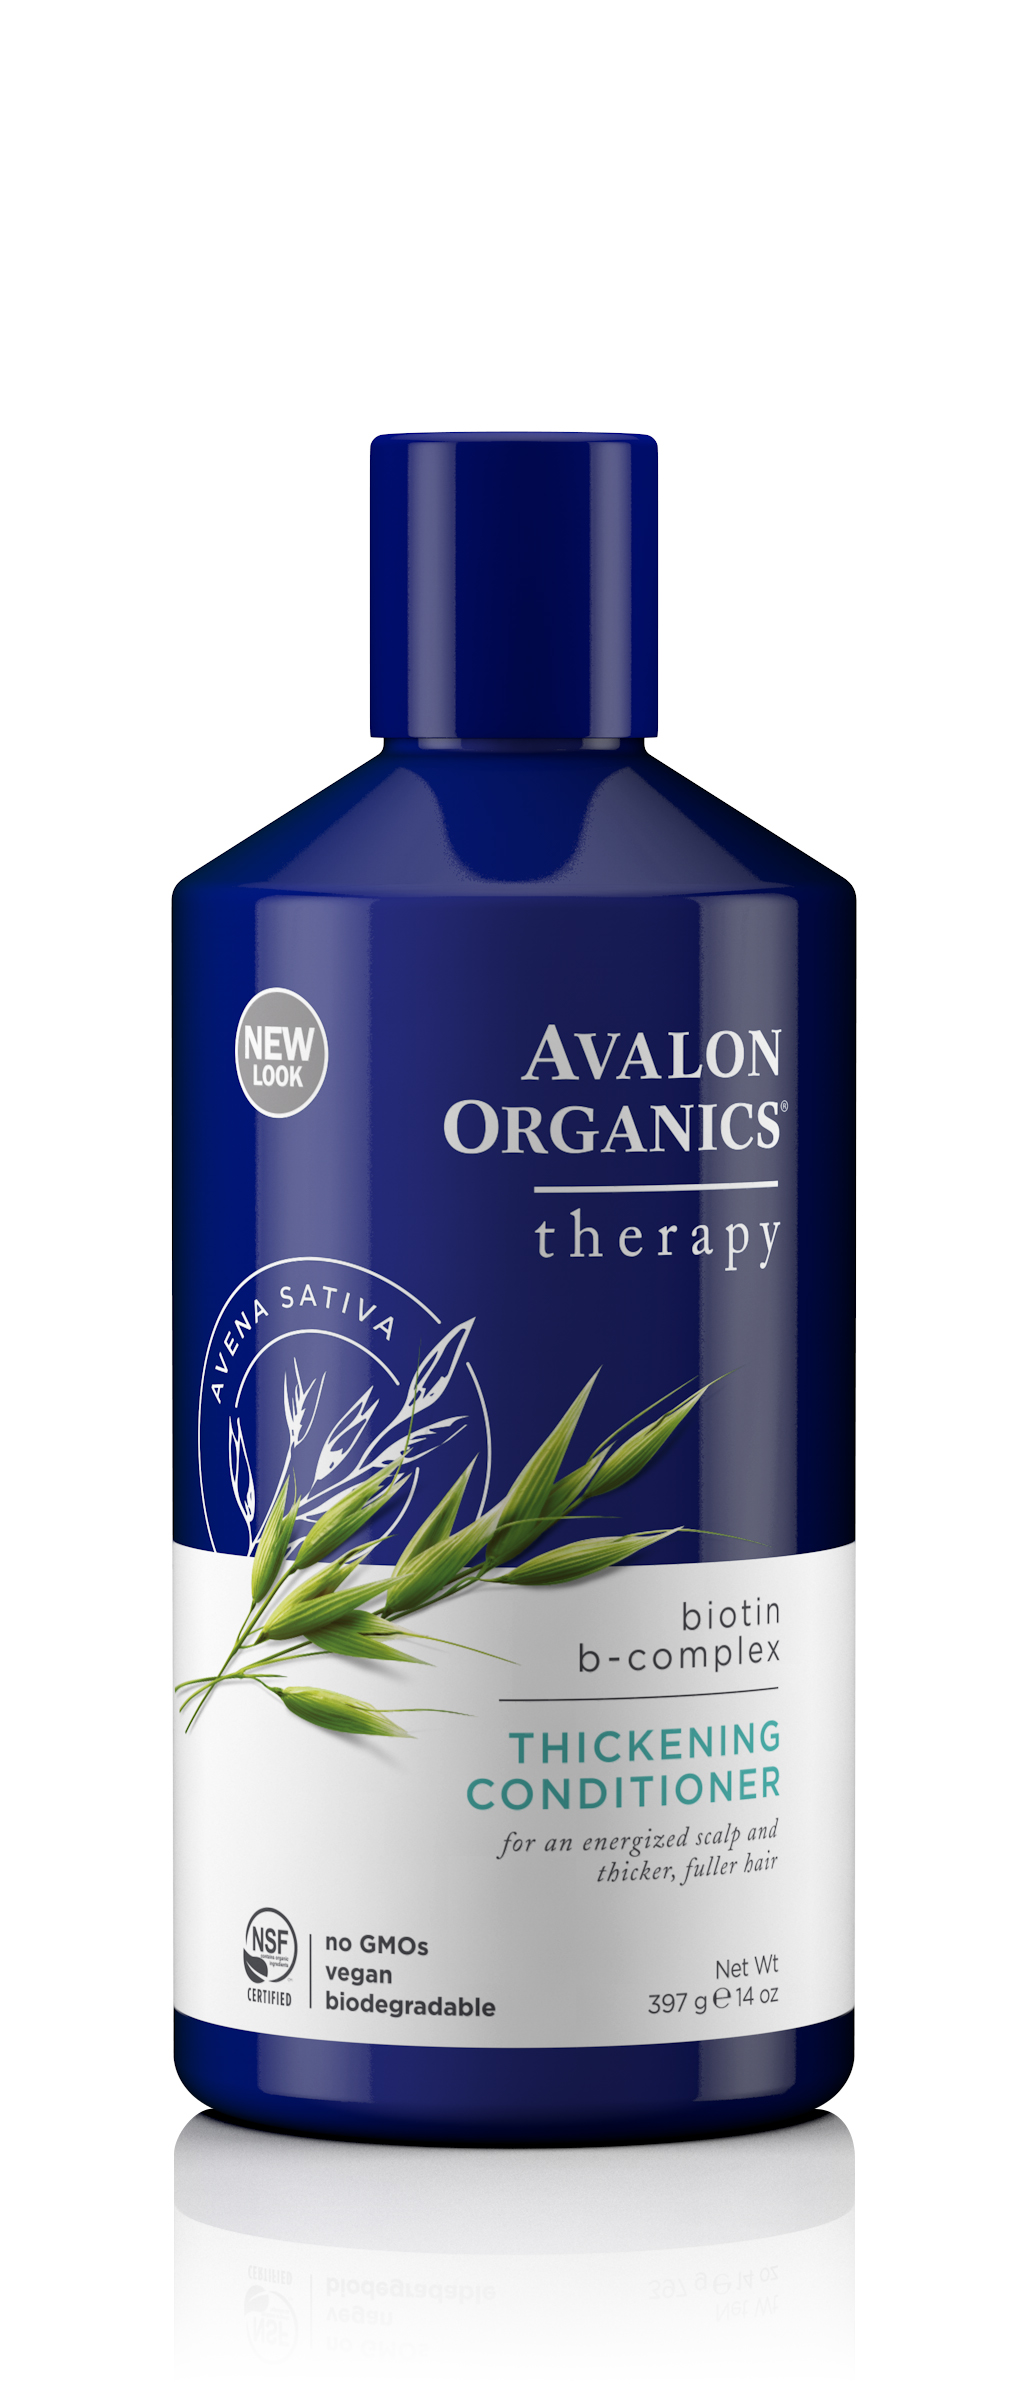 Avalon Organics BIOTIN B-COMPLEX Conditioner 395ml